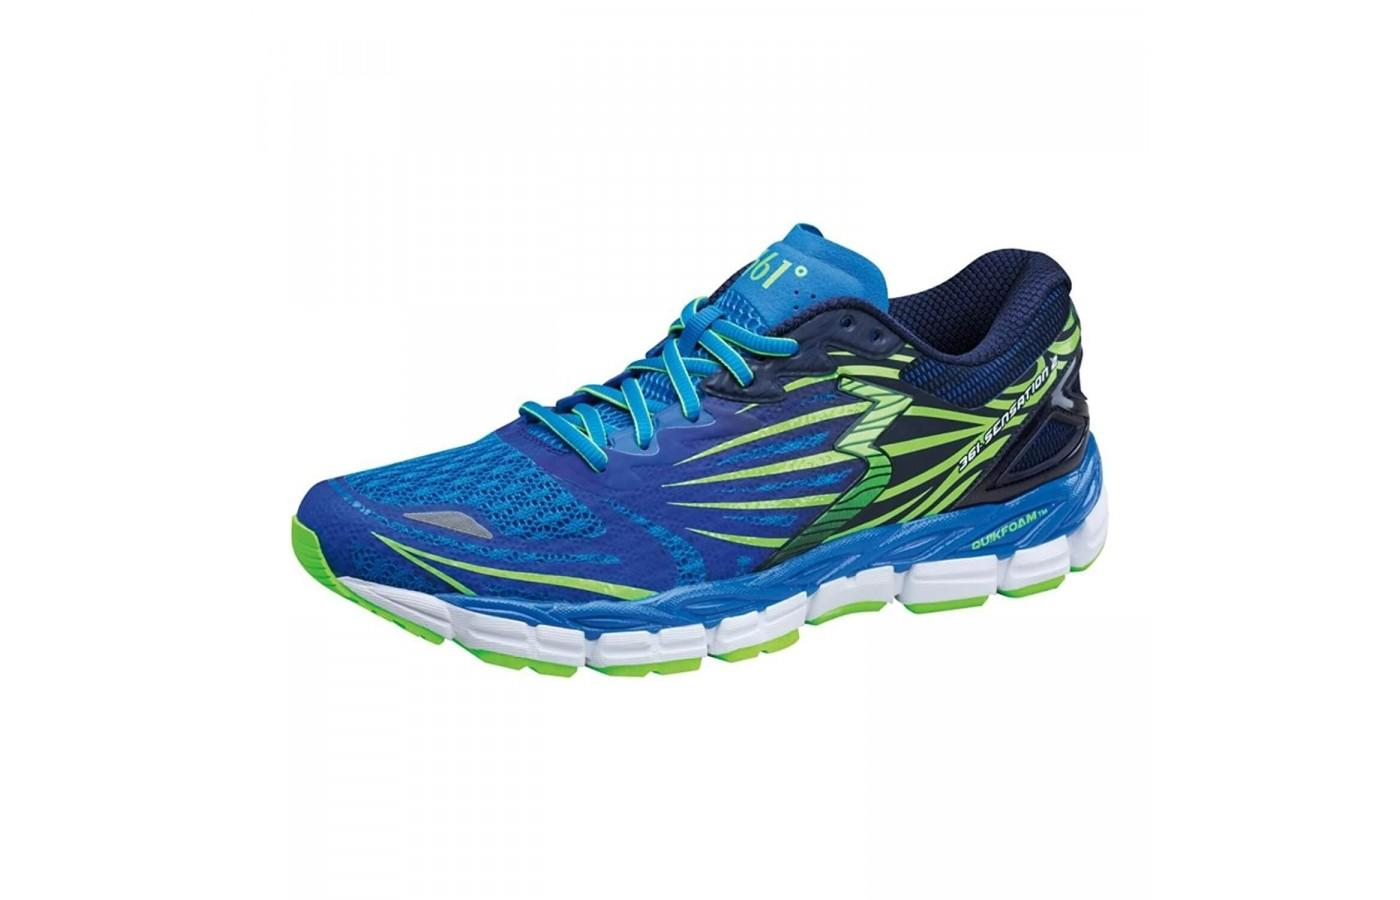 This is a heavier shoe and is great for runners who need mild to moderate pronation support.